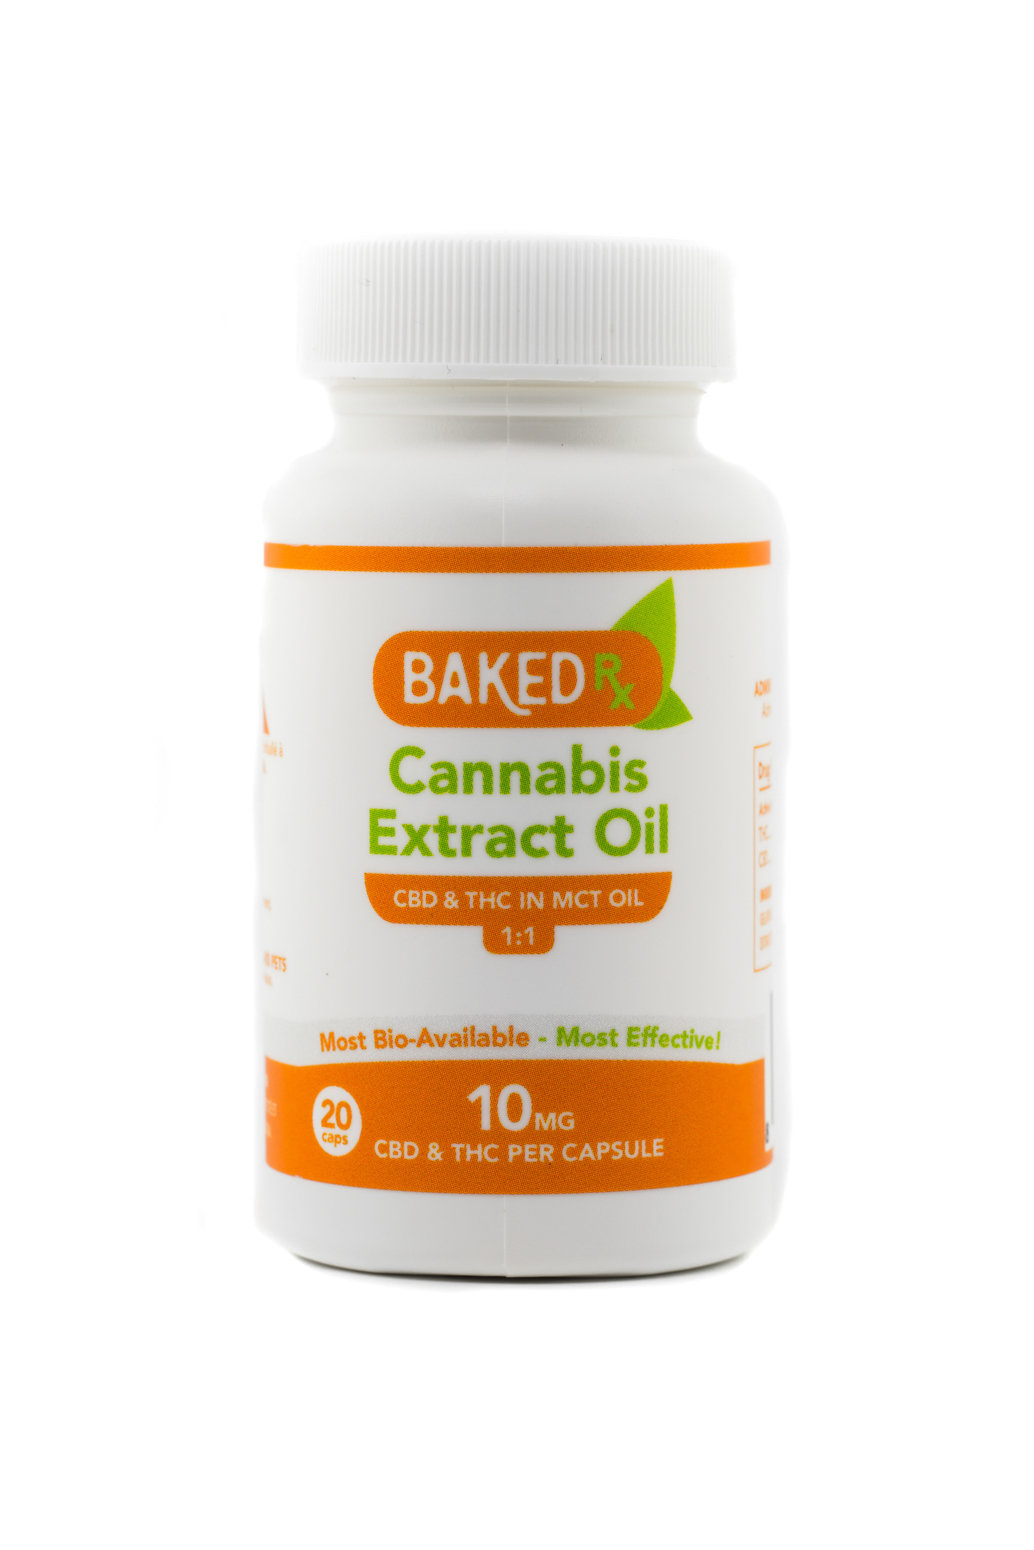 10mg 1:1 THC/CBD Capsules (20 pack) by Baked Edibles 00047